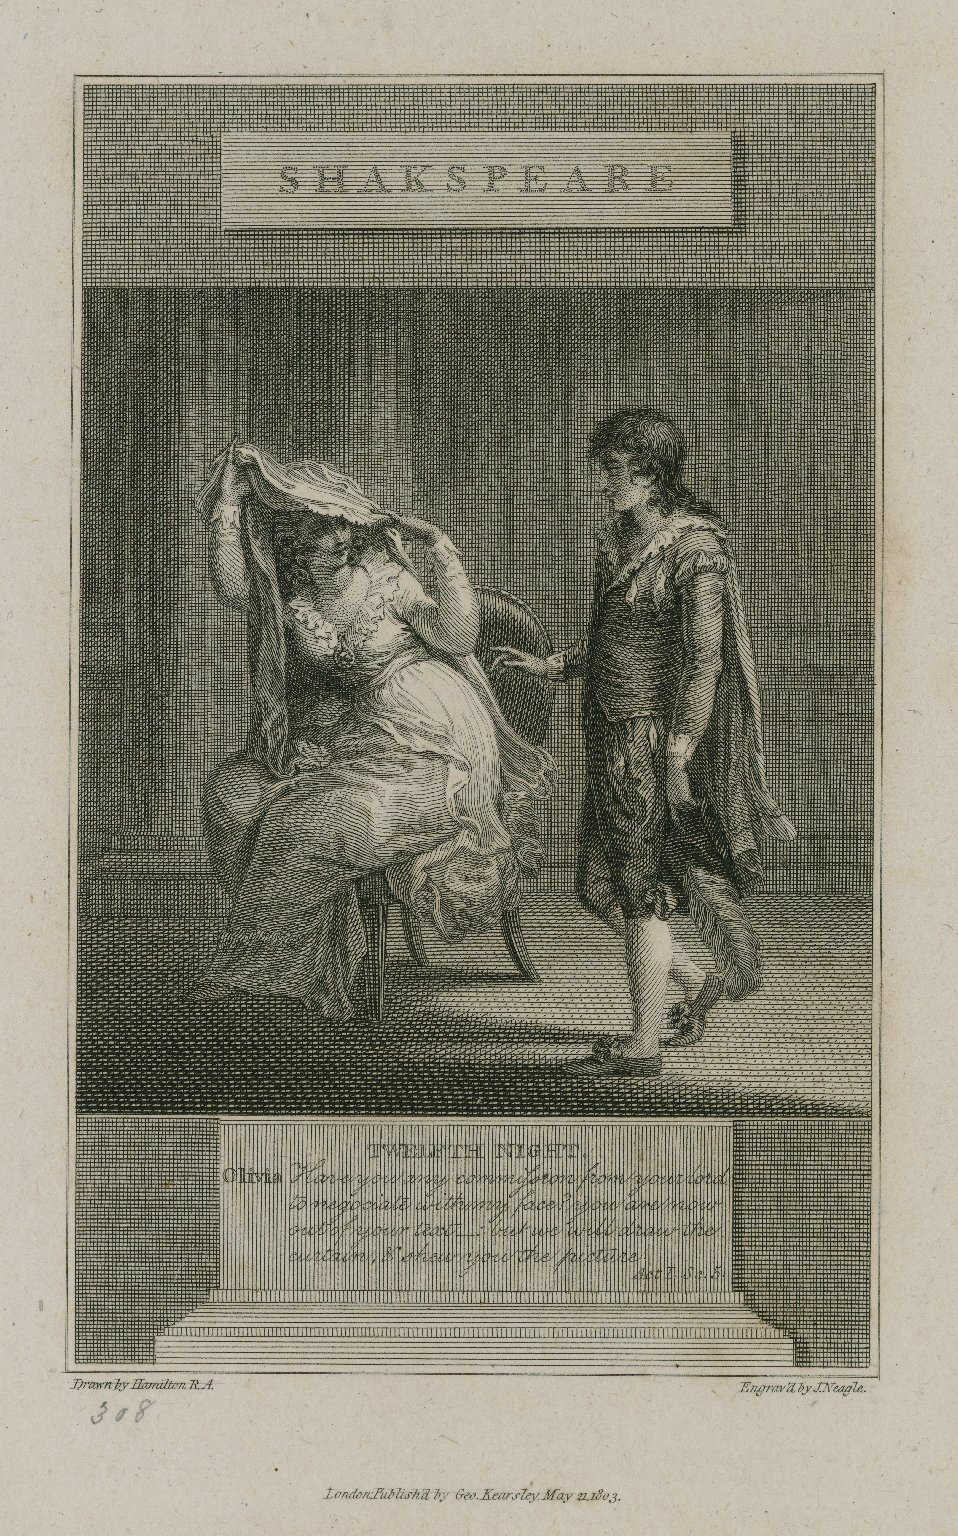 Twelfth night, Olivia: Have you any commission from your Lord to negociate with my face? ... act I, sc. 5 [graphic] / drawn by Hamilton, R.A. ; engrav'd by J. Neagle.